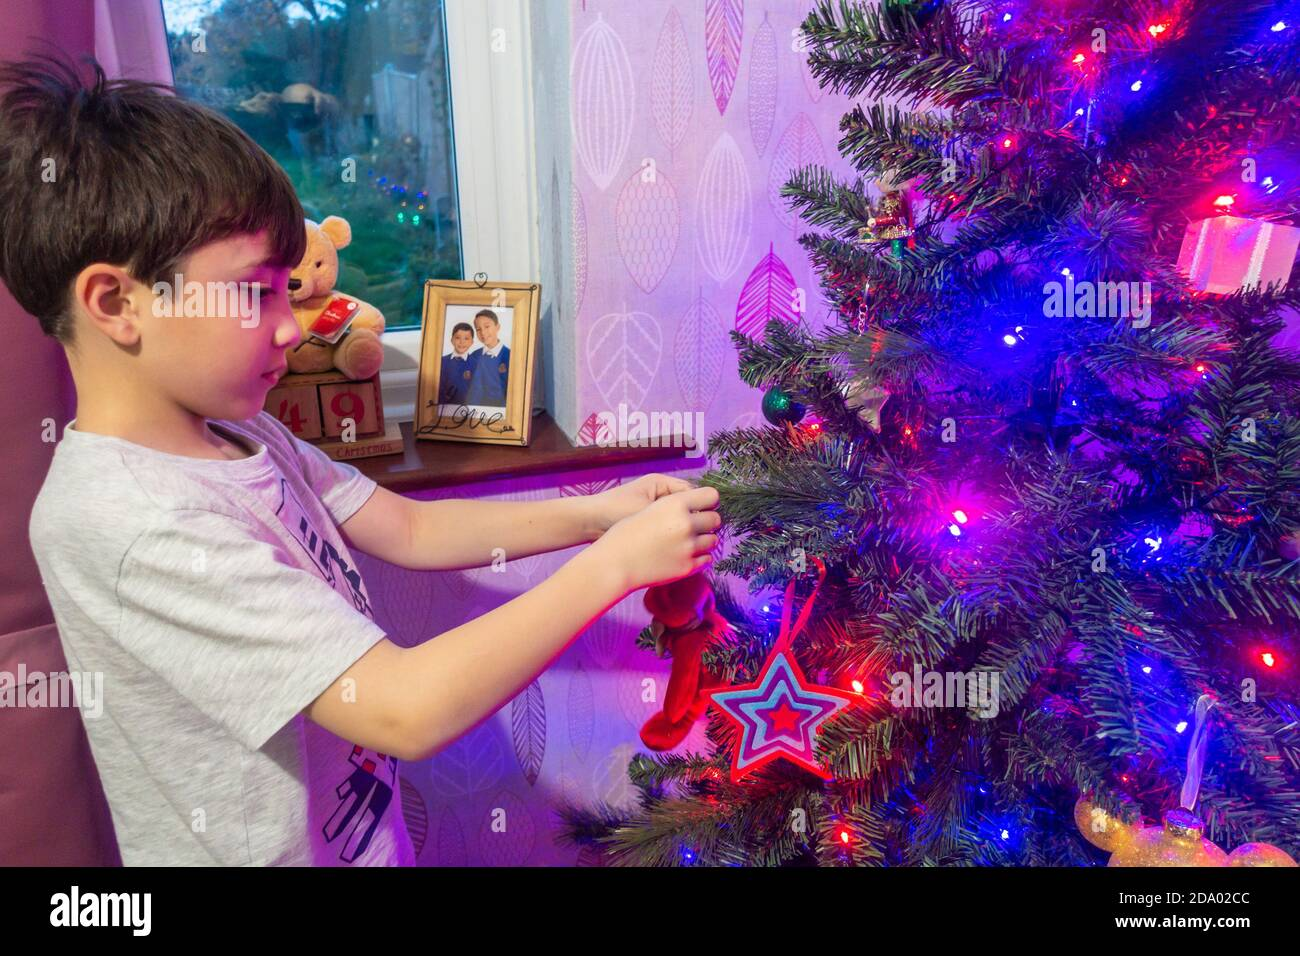 a-child-hangs-decorations-on-a-christmas-tree-which-is-lit-y-coloured-fairy-lights-2DA02CC.jpg